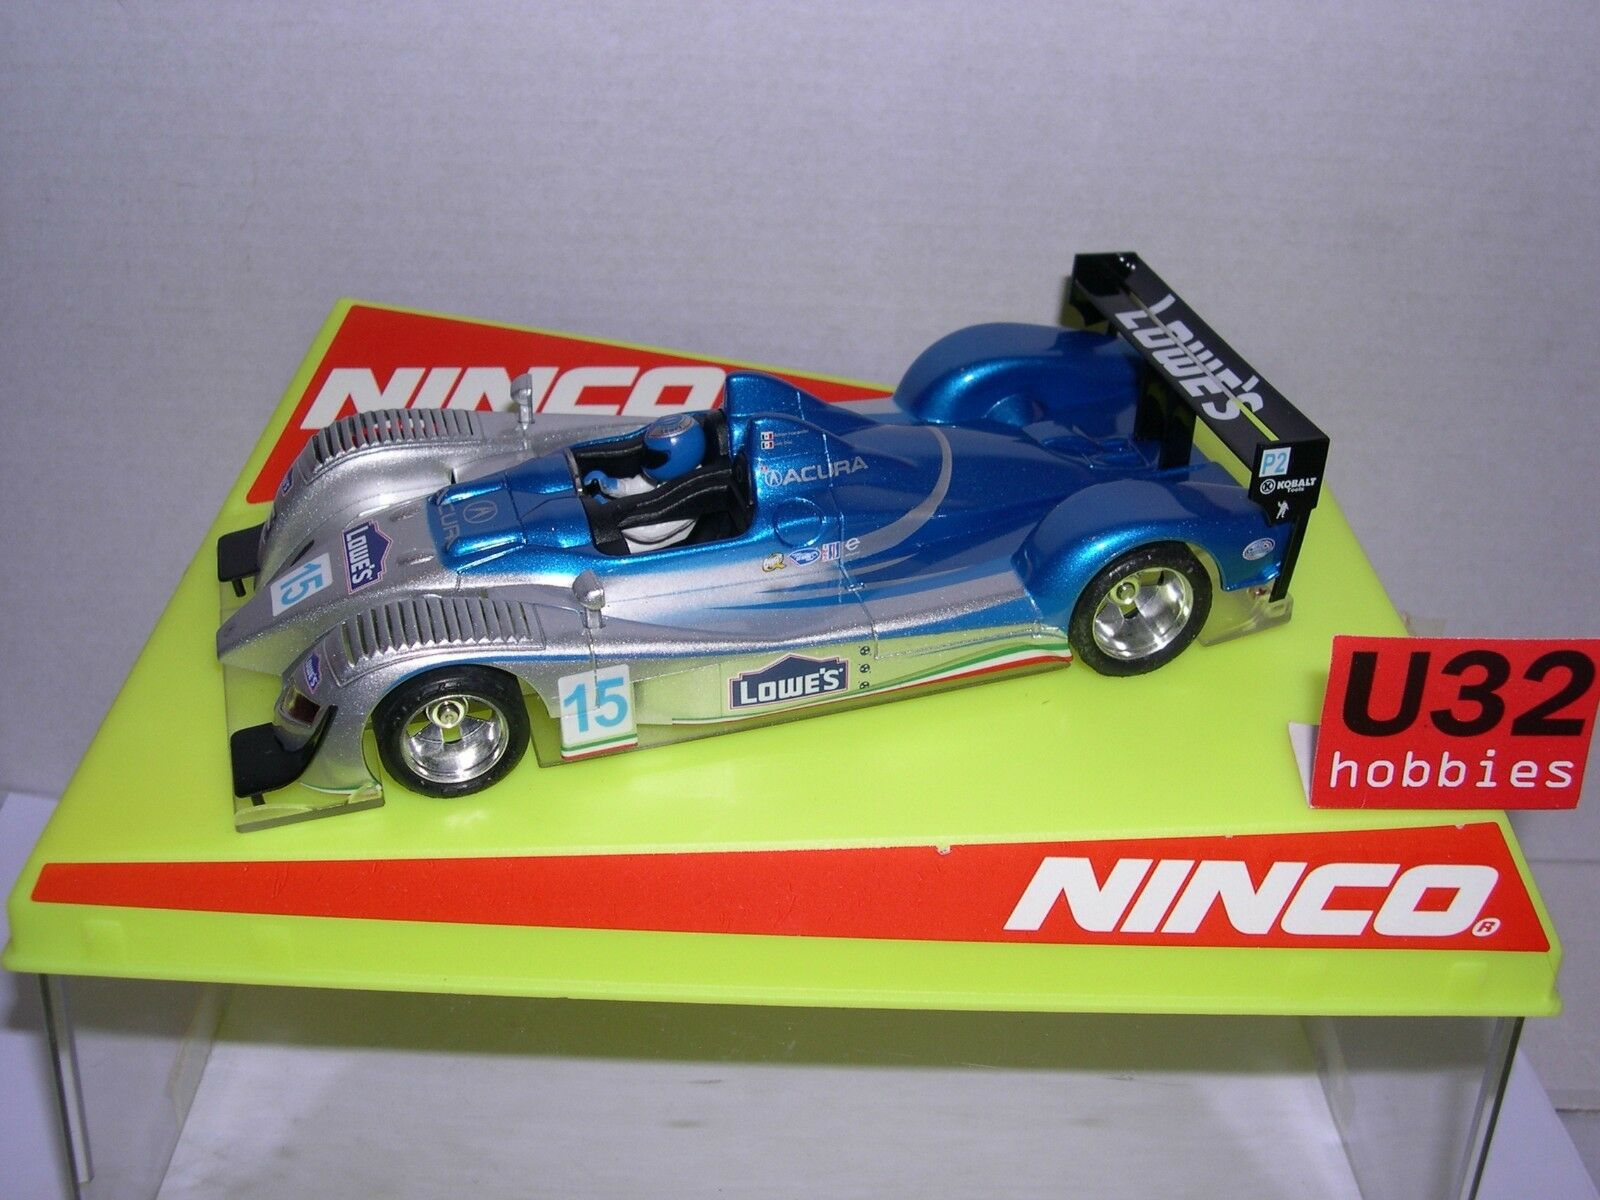 NINCO ACURA LMP LIGHTNING  15 BODY NINCO LOWE MB